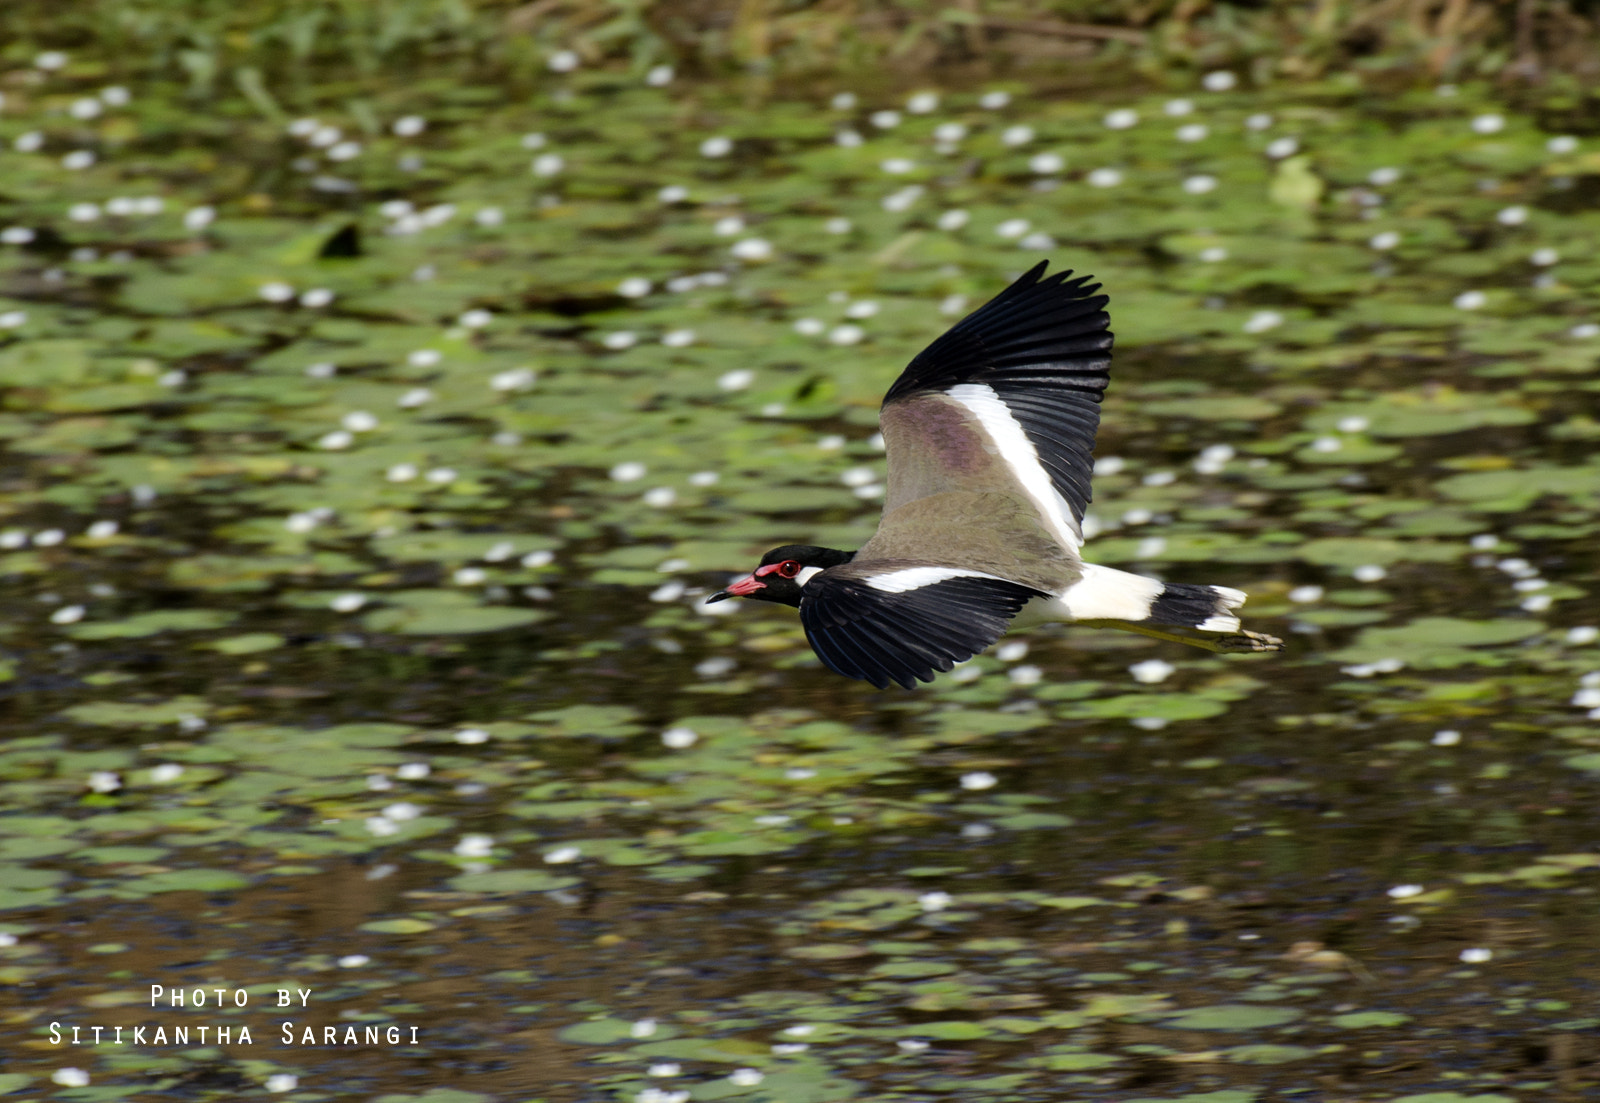 Photograph Red wattled Lapwing in flight by sitikantha sarangi on 500px